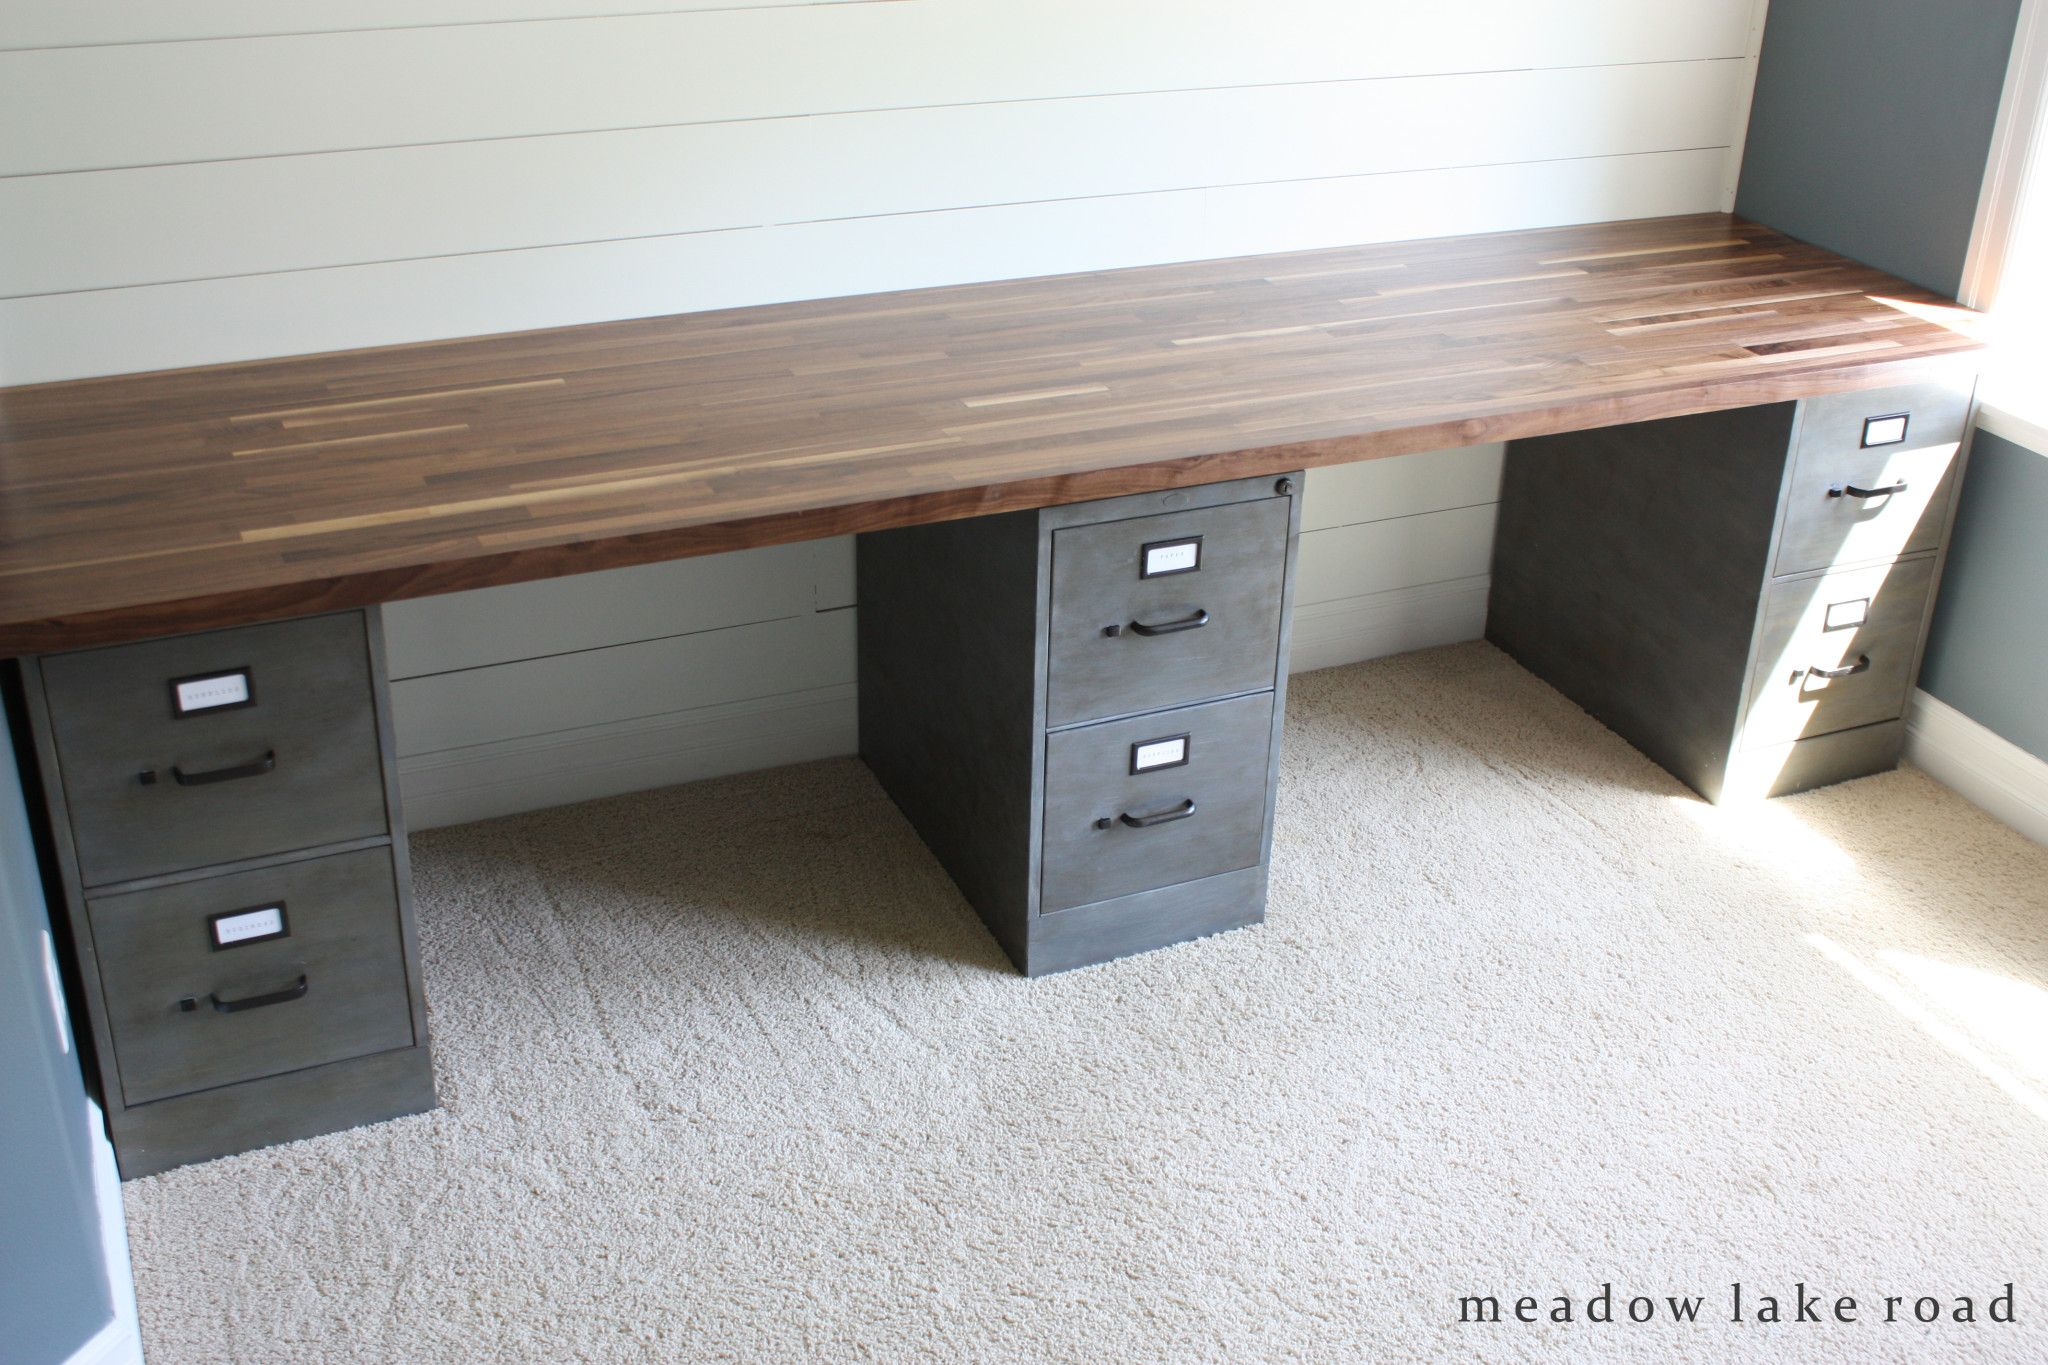 long desk   best ideas about computer desks on pinterest  - butcher block desk top butcher block desk metal file cabinets